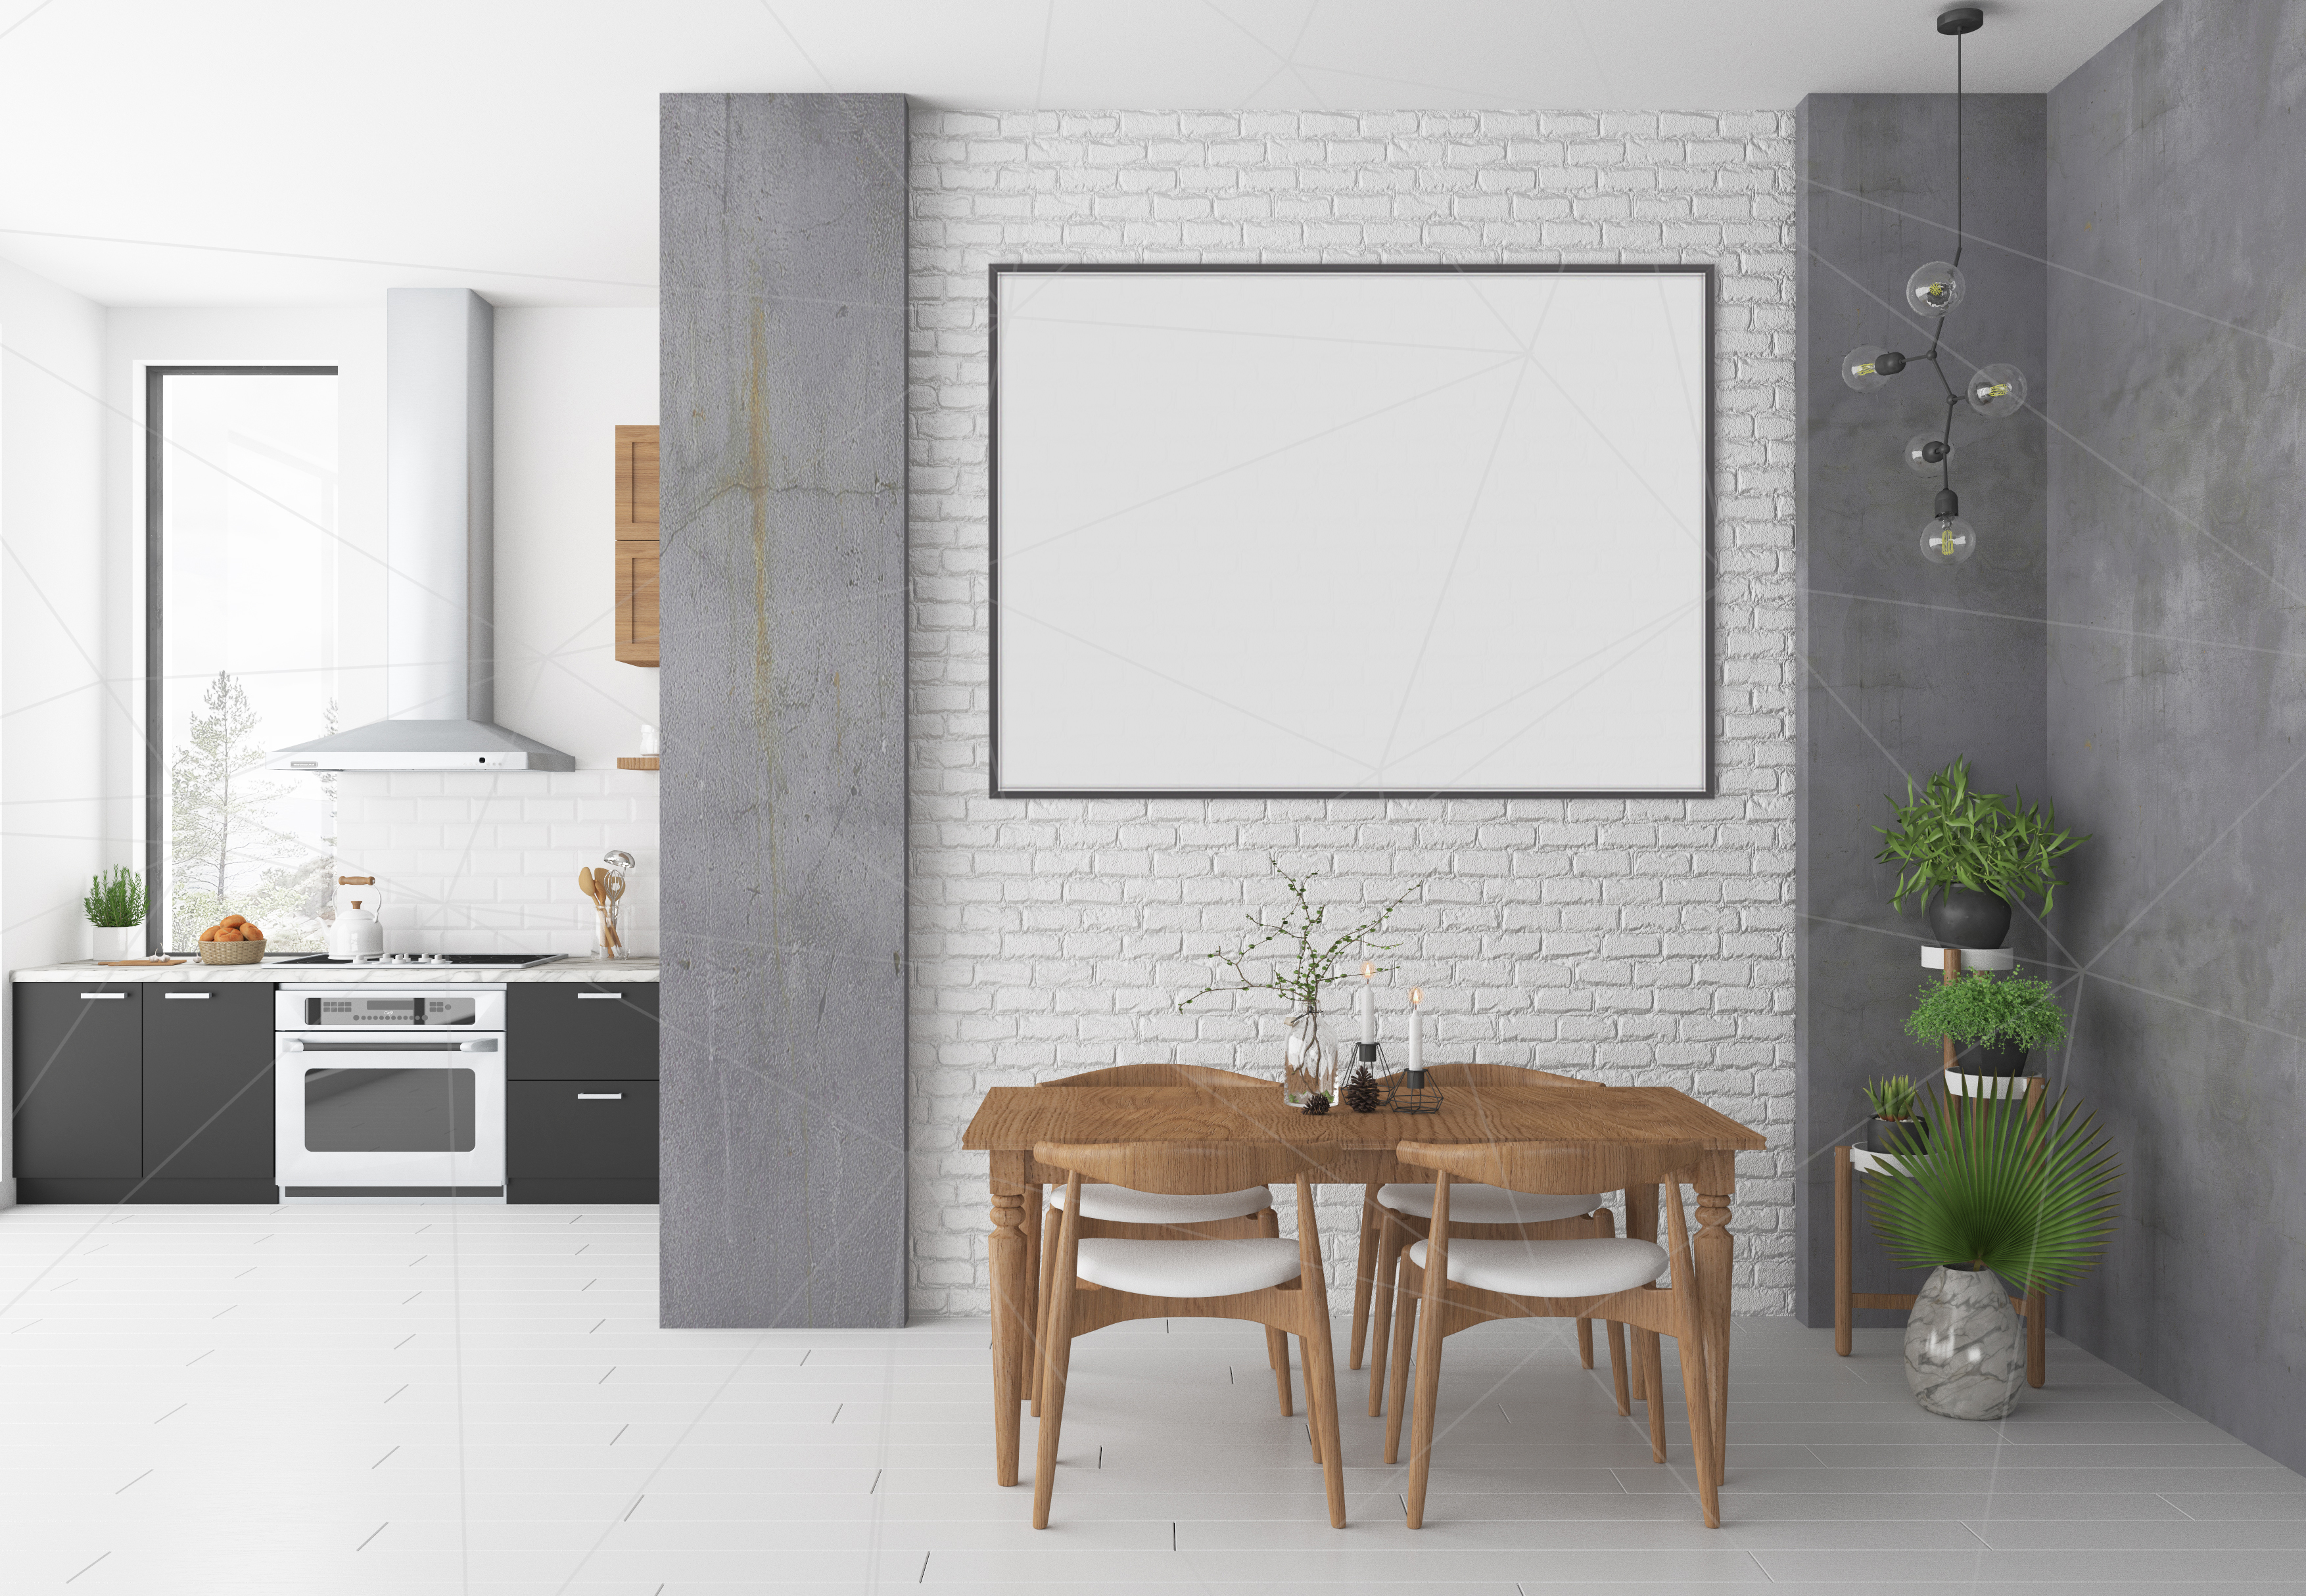 Interior mockup bundle - blank wall mock up example image 4